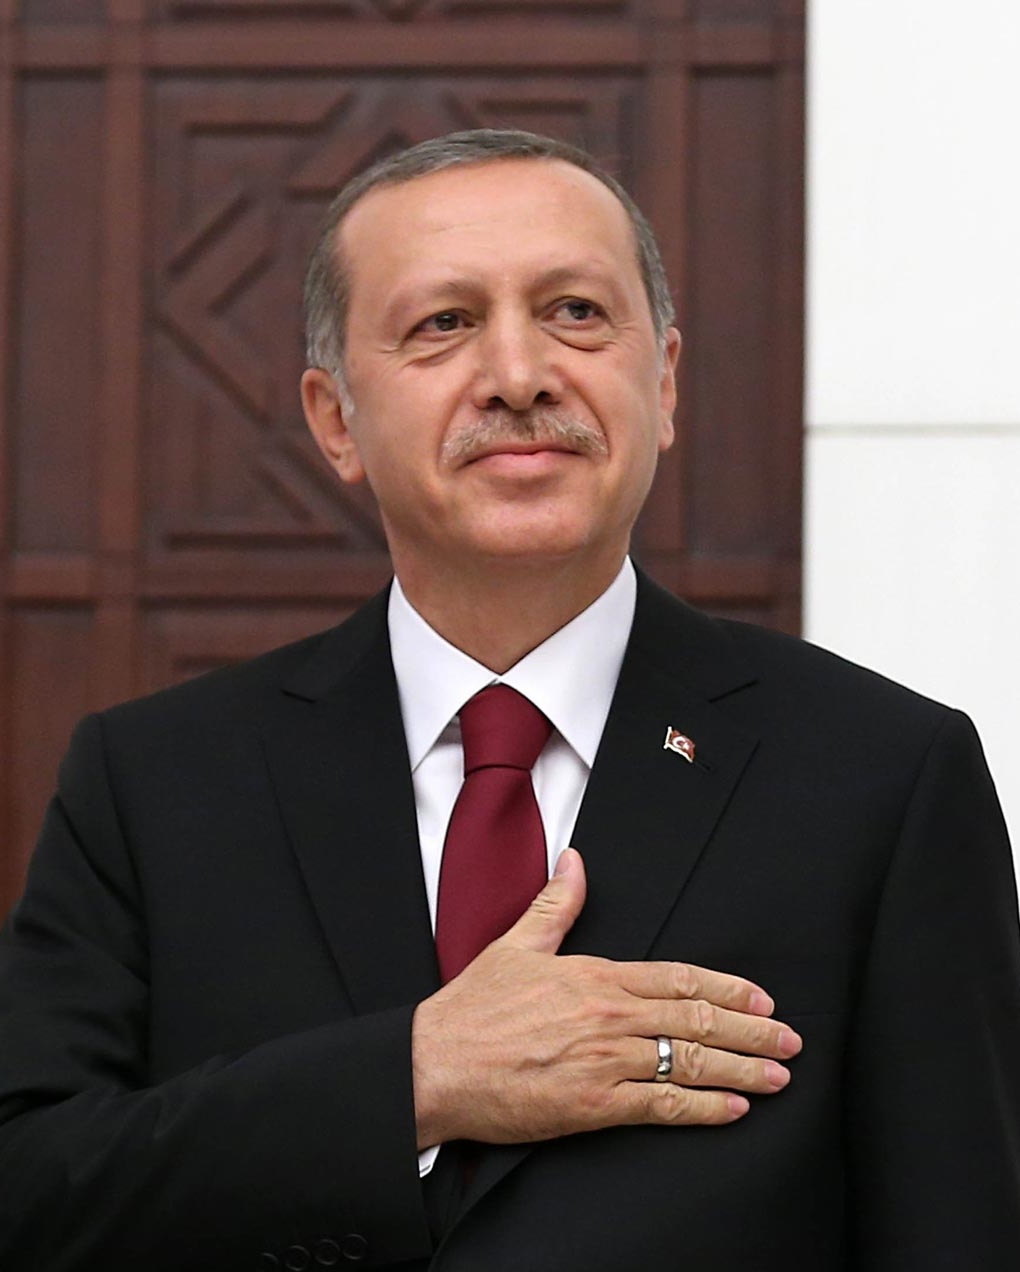 Official_account_of_Recep_Tayyip_Erdogan.png.0aa632a588c285af906721640c22774f.png